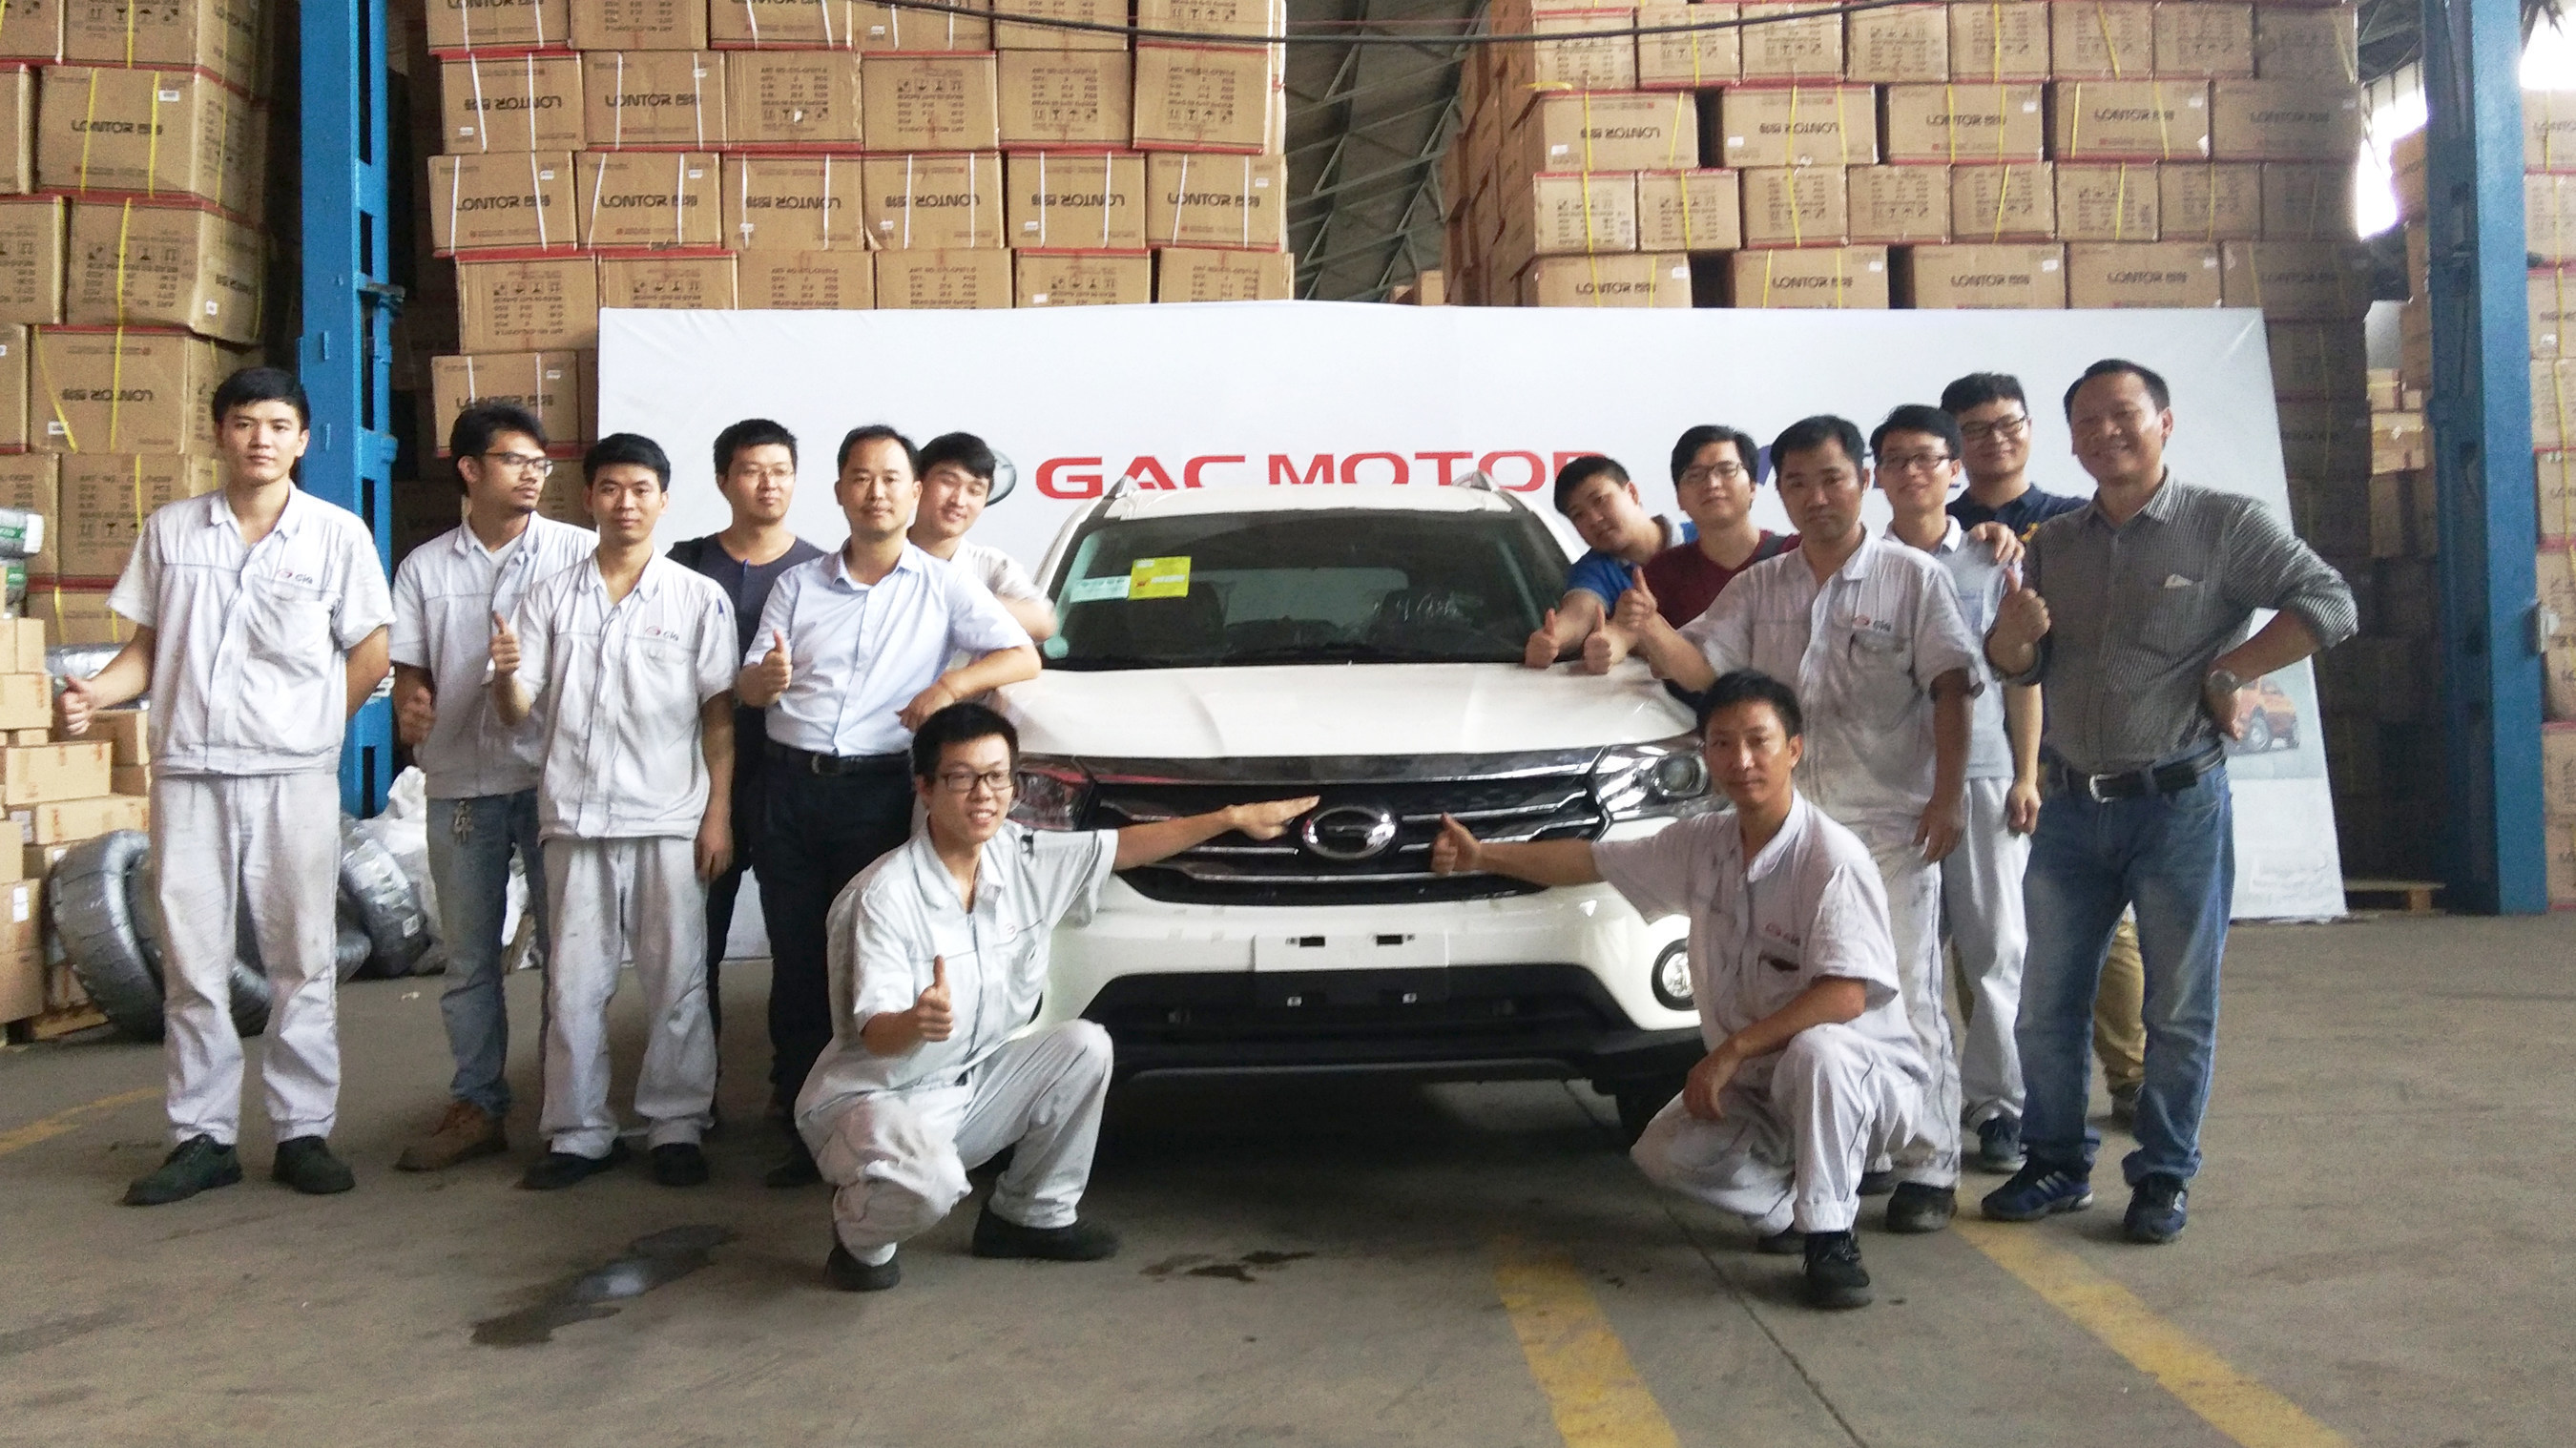 GAC Motor finishes parts assembly and testing of its first eight GS4 vehicles for its GAC Motor SKD (semi knocked-down) project through CIG Motors, distributor of GAC Motor in Nigeria